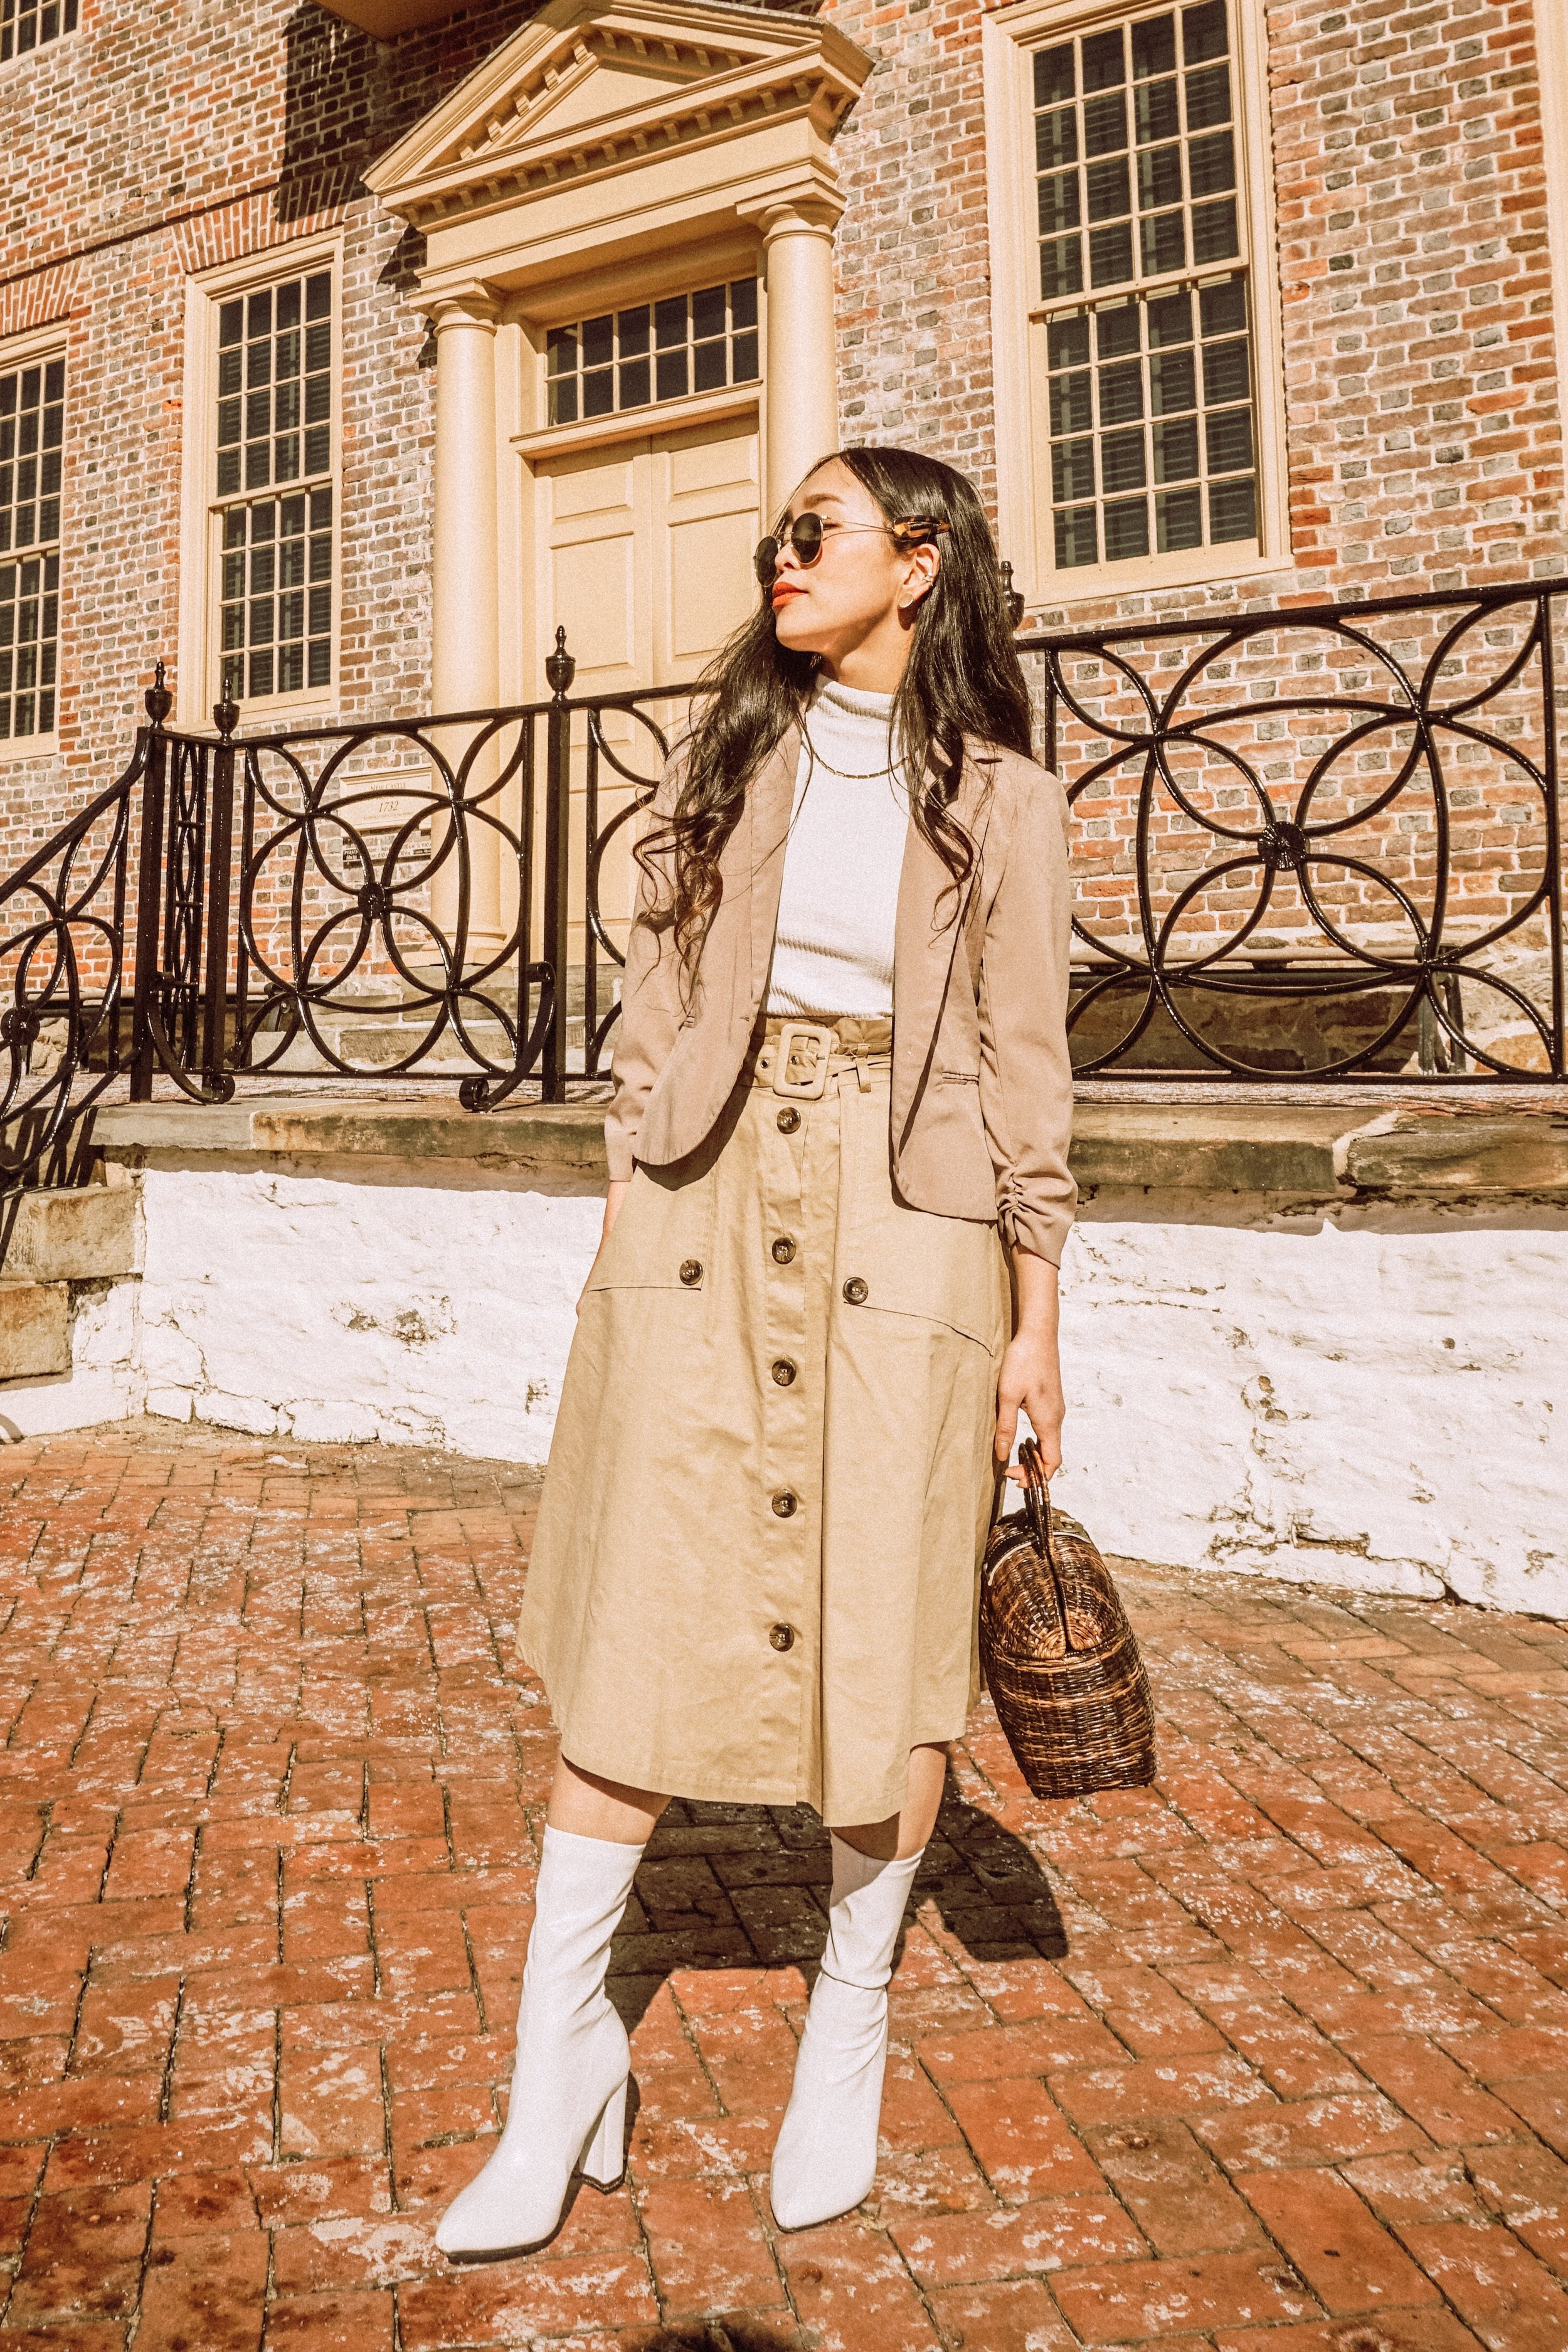 Neutral Lady TUESDAY - You can never go wrong with neutral clothes + white boots. So chic, neat and trendy with the boots, wear them with the matching blazer and a skirt!